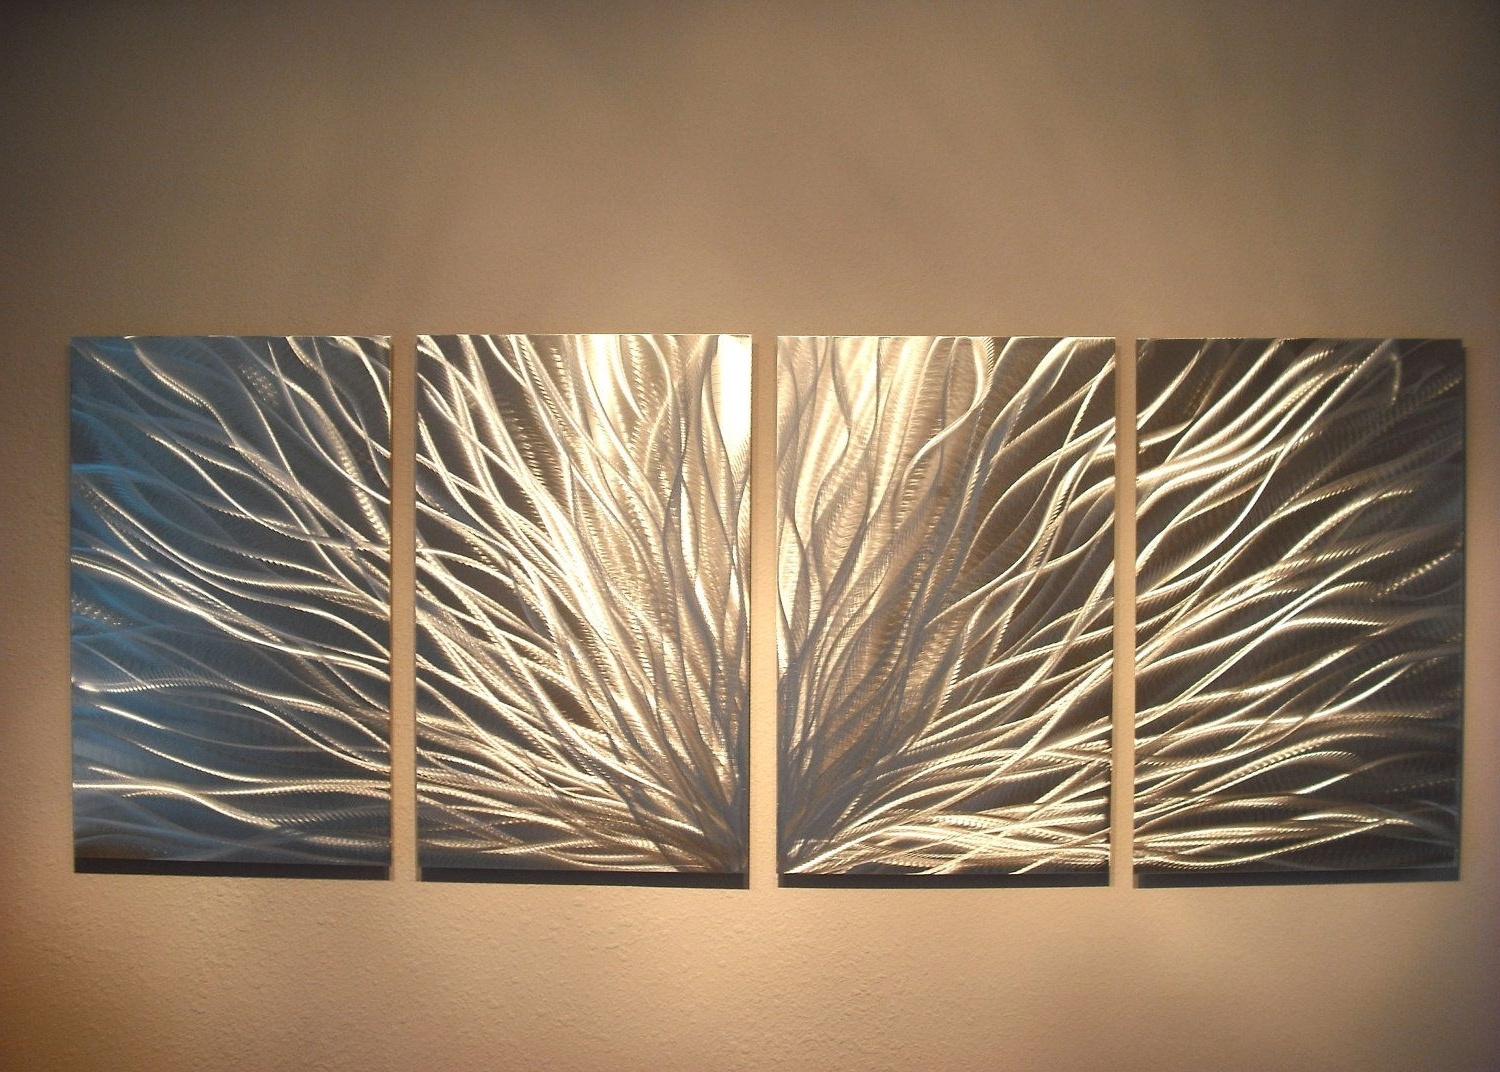 Metal Wall Art Decor Abstract Aluminum Contemporary Modern In 2017 Bamboo Metal Wall Art (View 9 of 15)